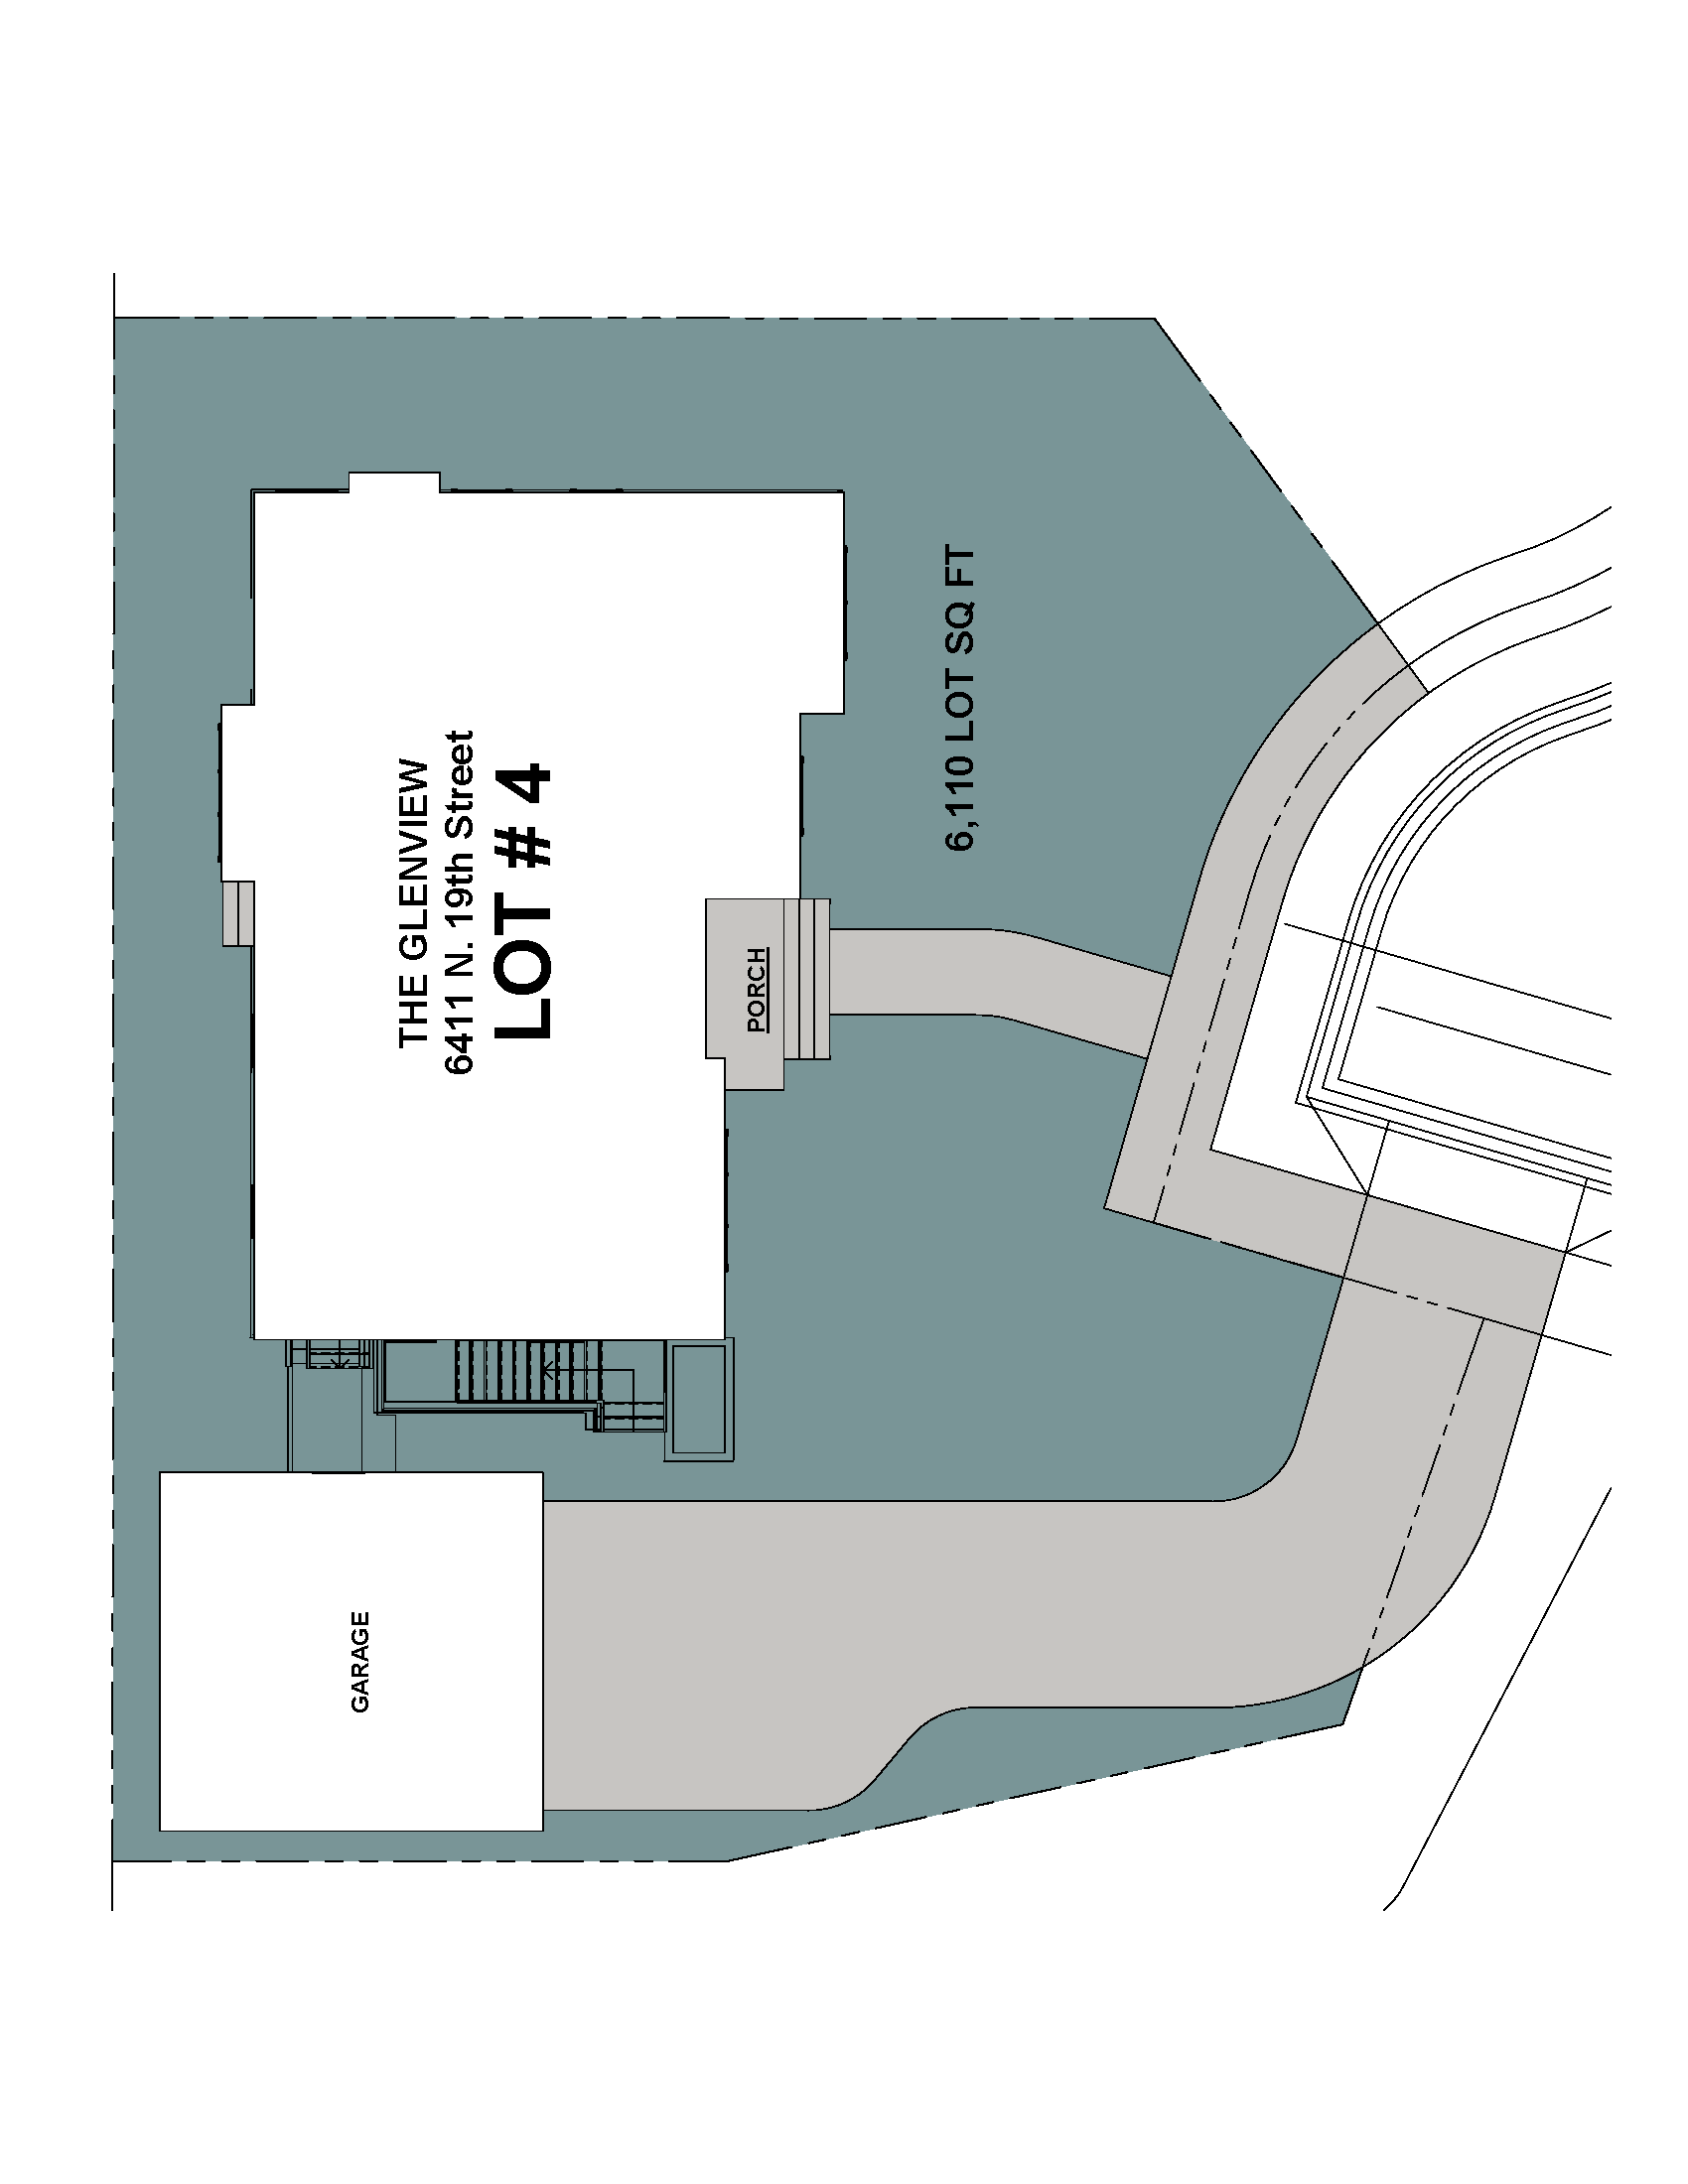 Lot 4 Site Plan-6411 N 19th Street- The Glenview Model.png